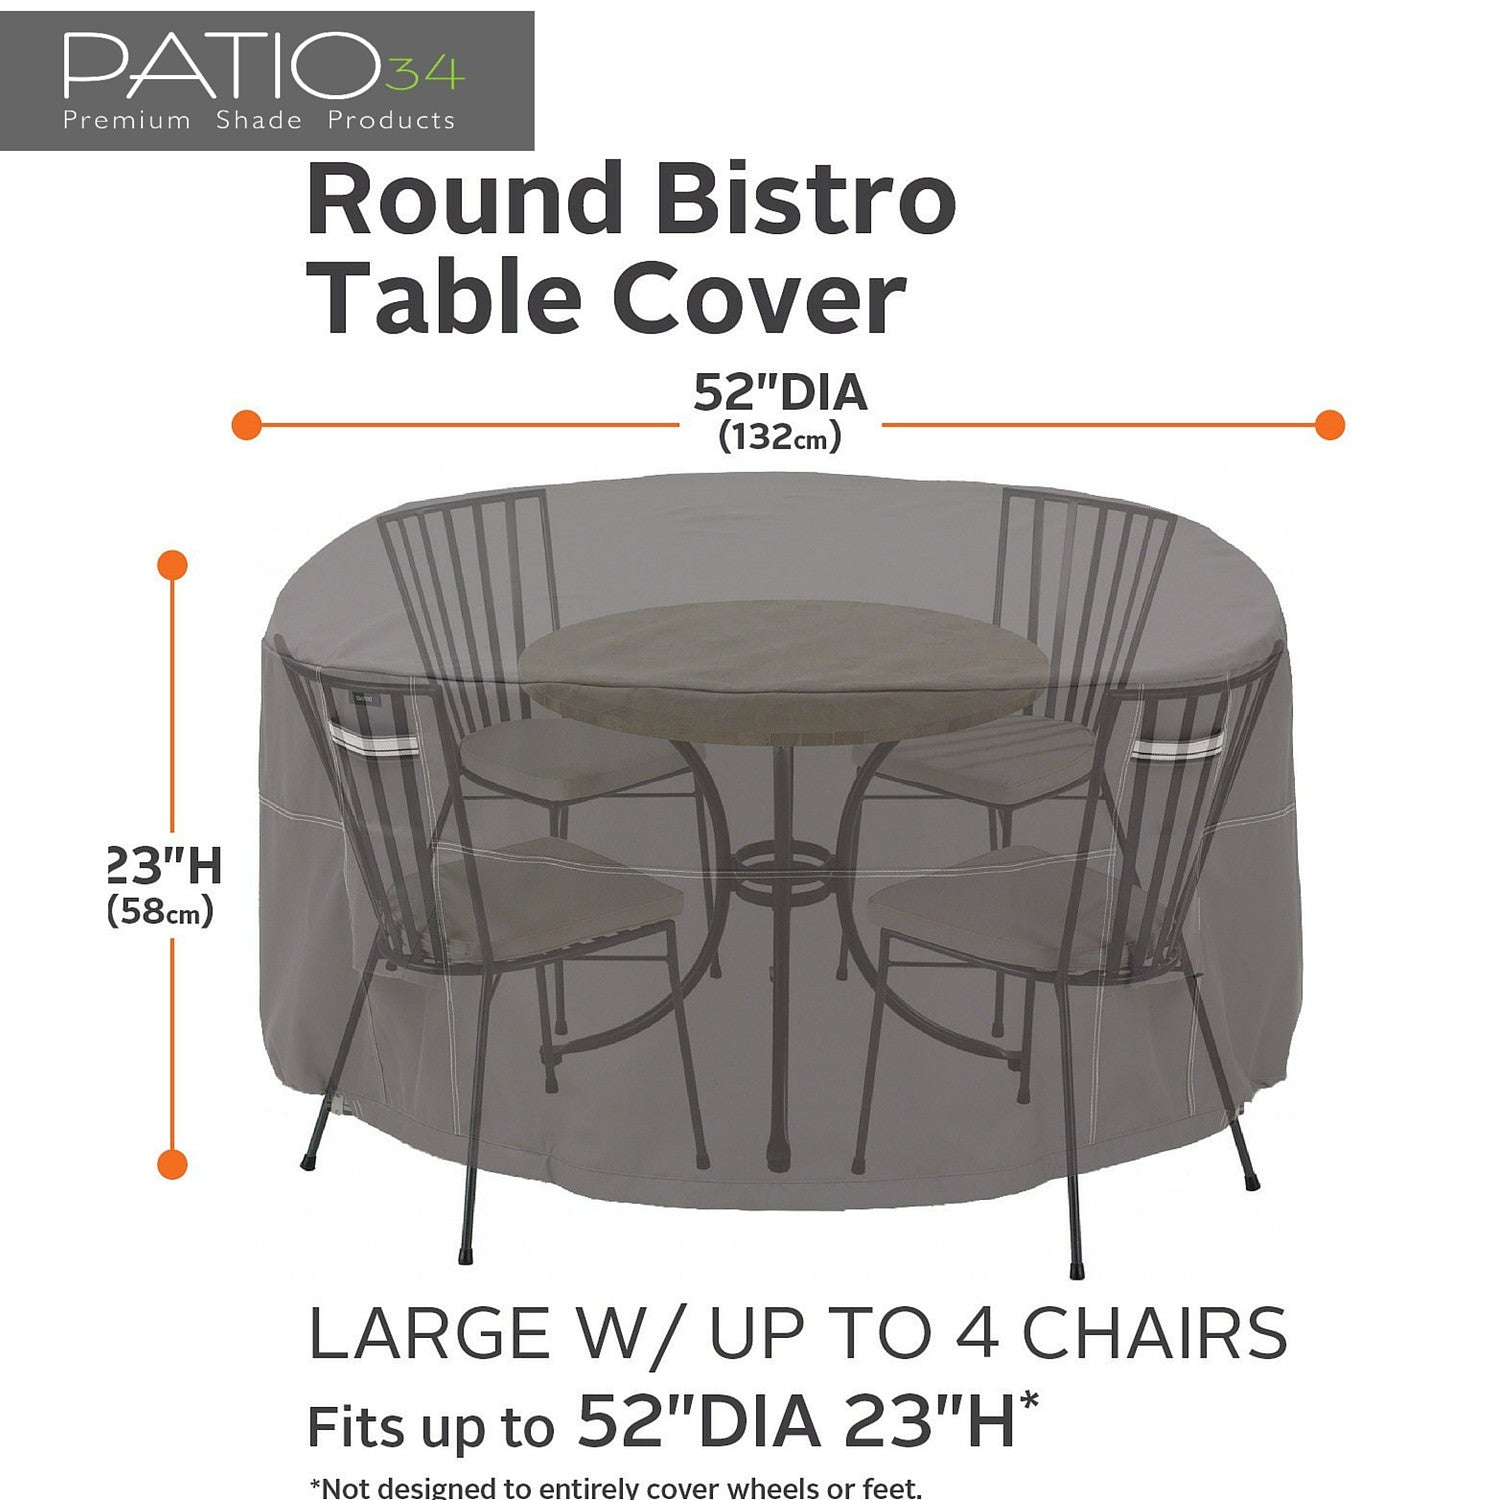 simpsonovi seating of table restaurant global for sale full size outdoor with paris industrial office stackable bar sets dining rattan los grey copy affiche info tables french collections chair bistro angeles drucker set buy single nz shot furniture bench chairs